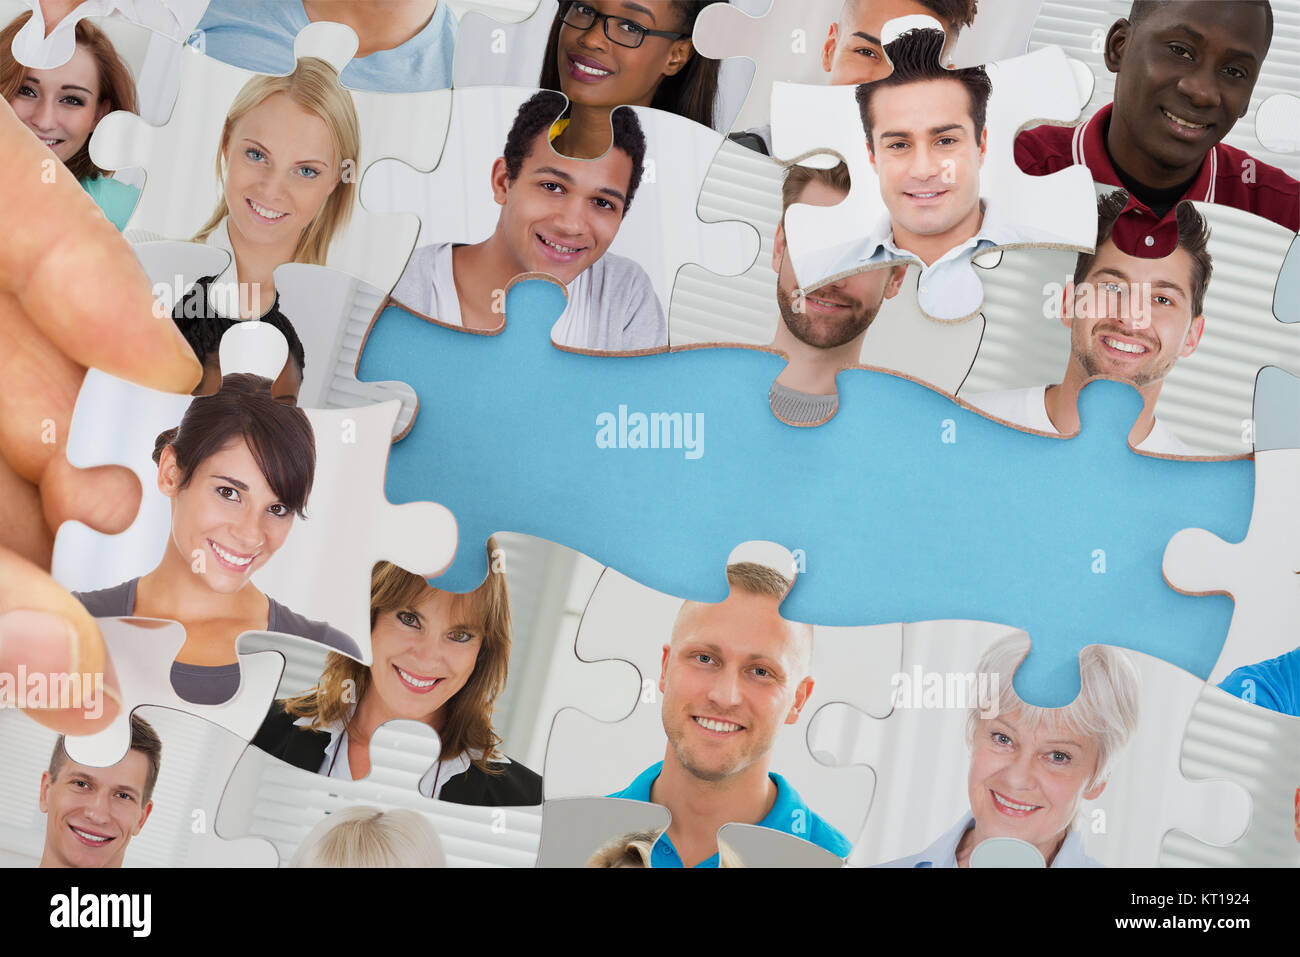 Big Data Text Under Jig Saw Puzzle Stock Photo